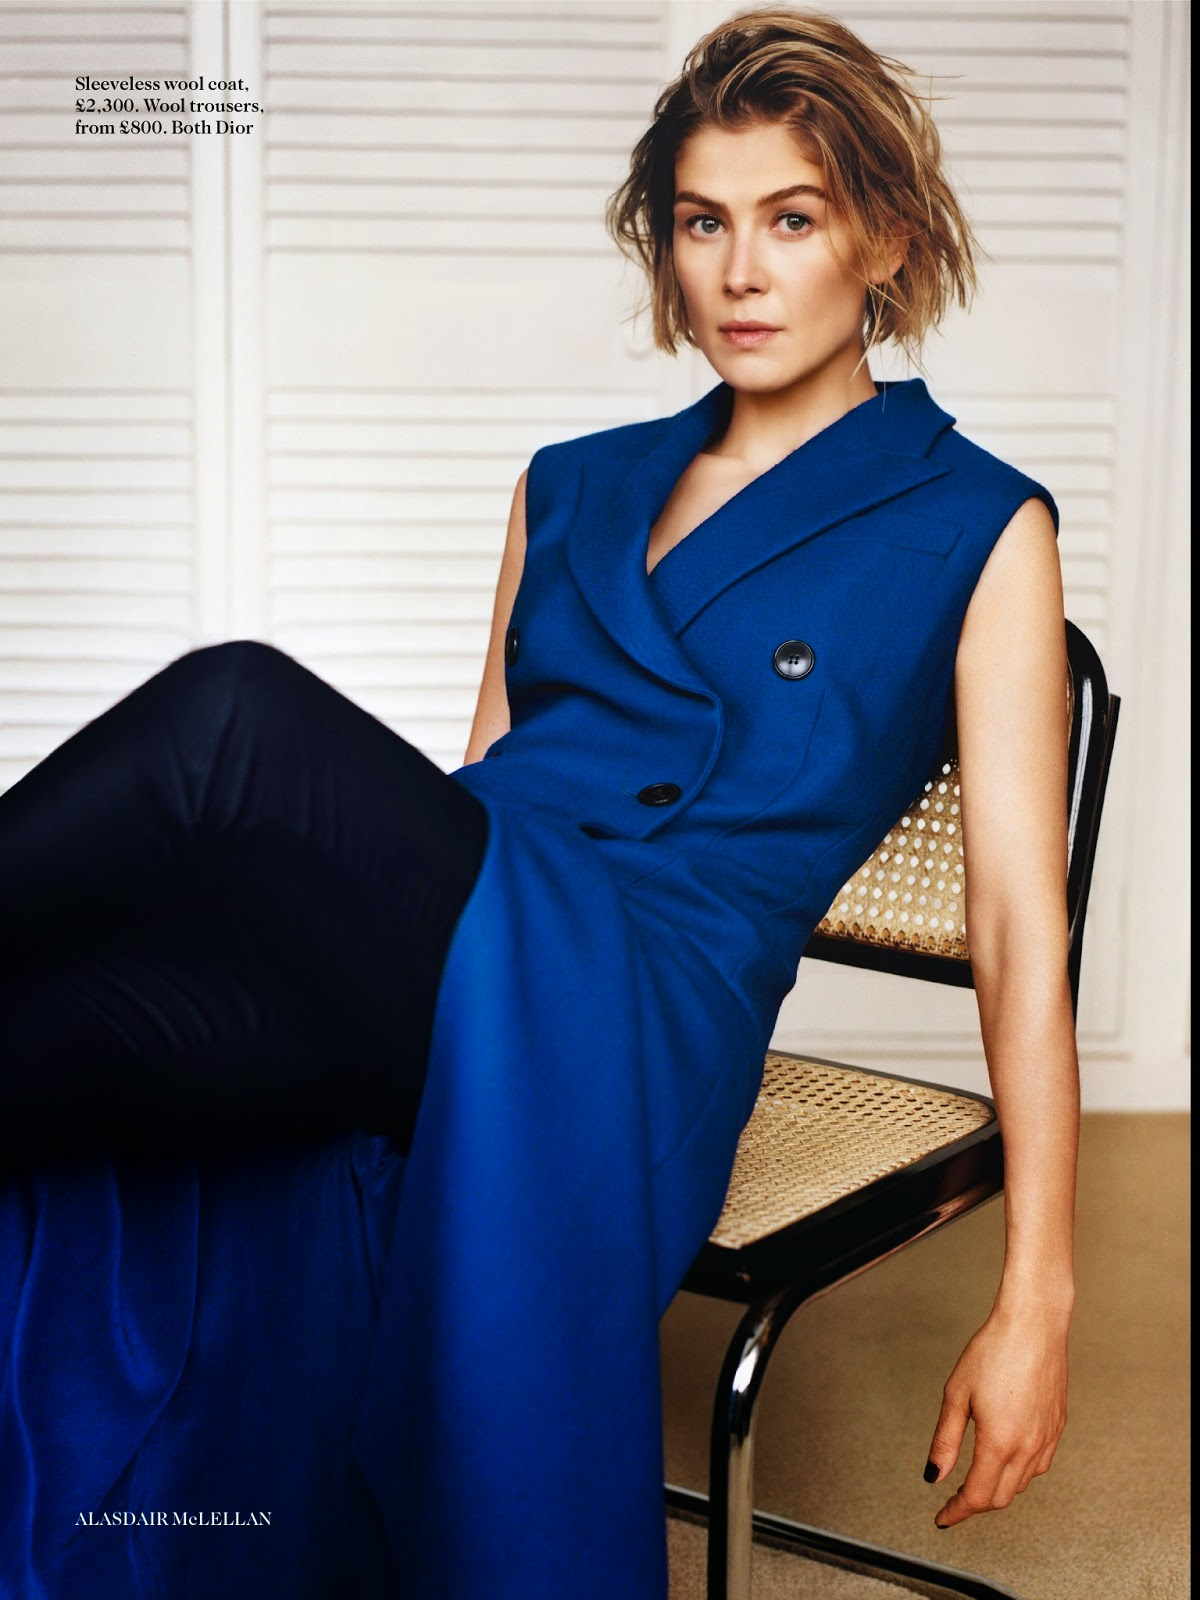 Rosamund Pike: Vogue UK 2014 -07 – GotCelebRosamund Pike 2014